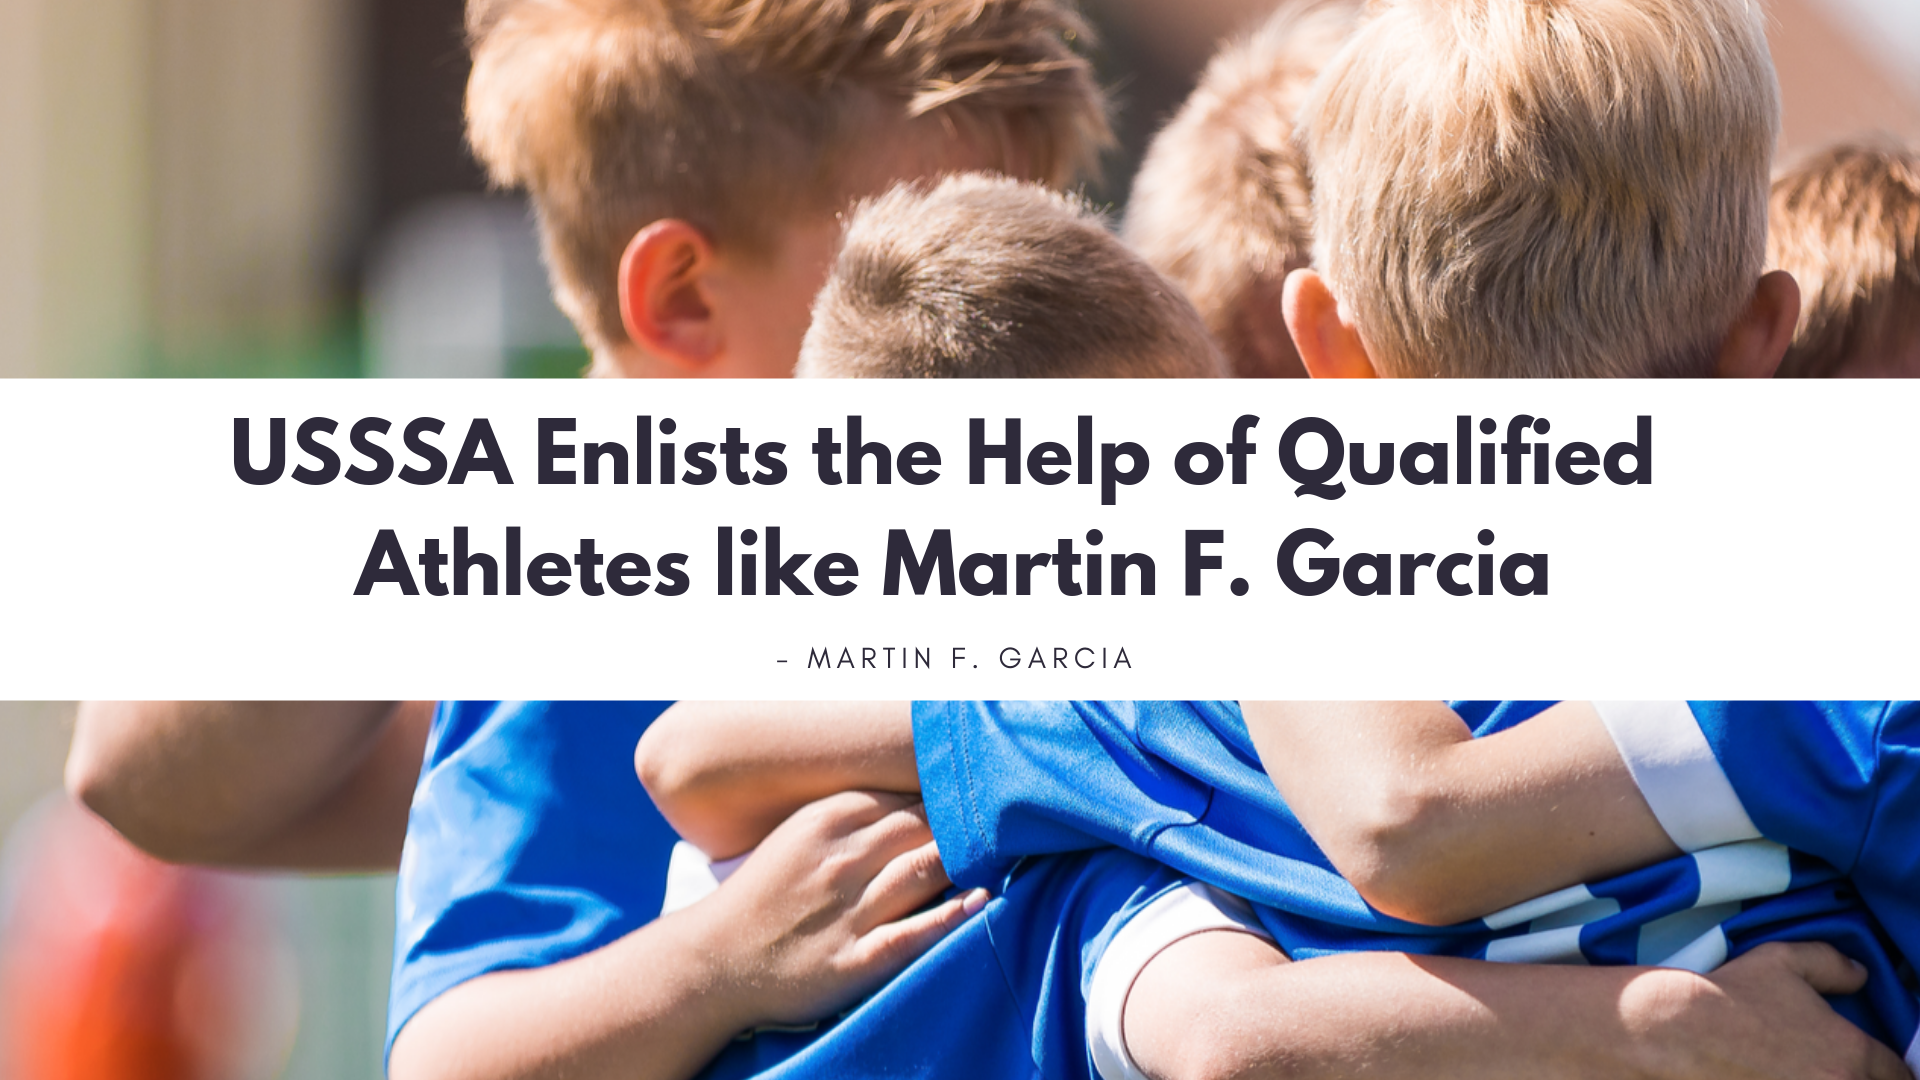 USSSA Enlists the Help of Qualified Athletes like Martin F. Garcia to Be Program Leaders